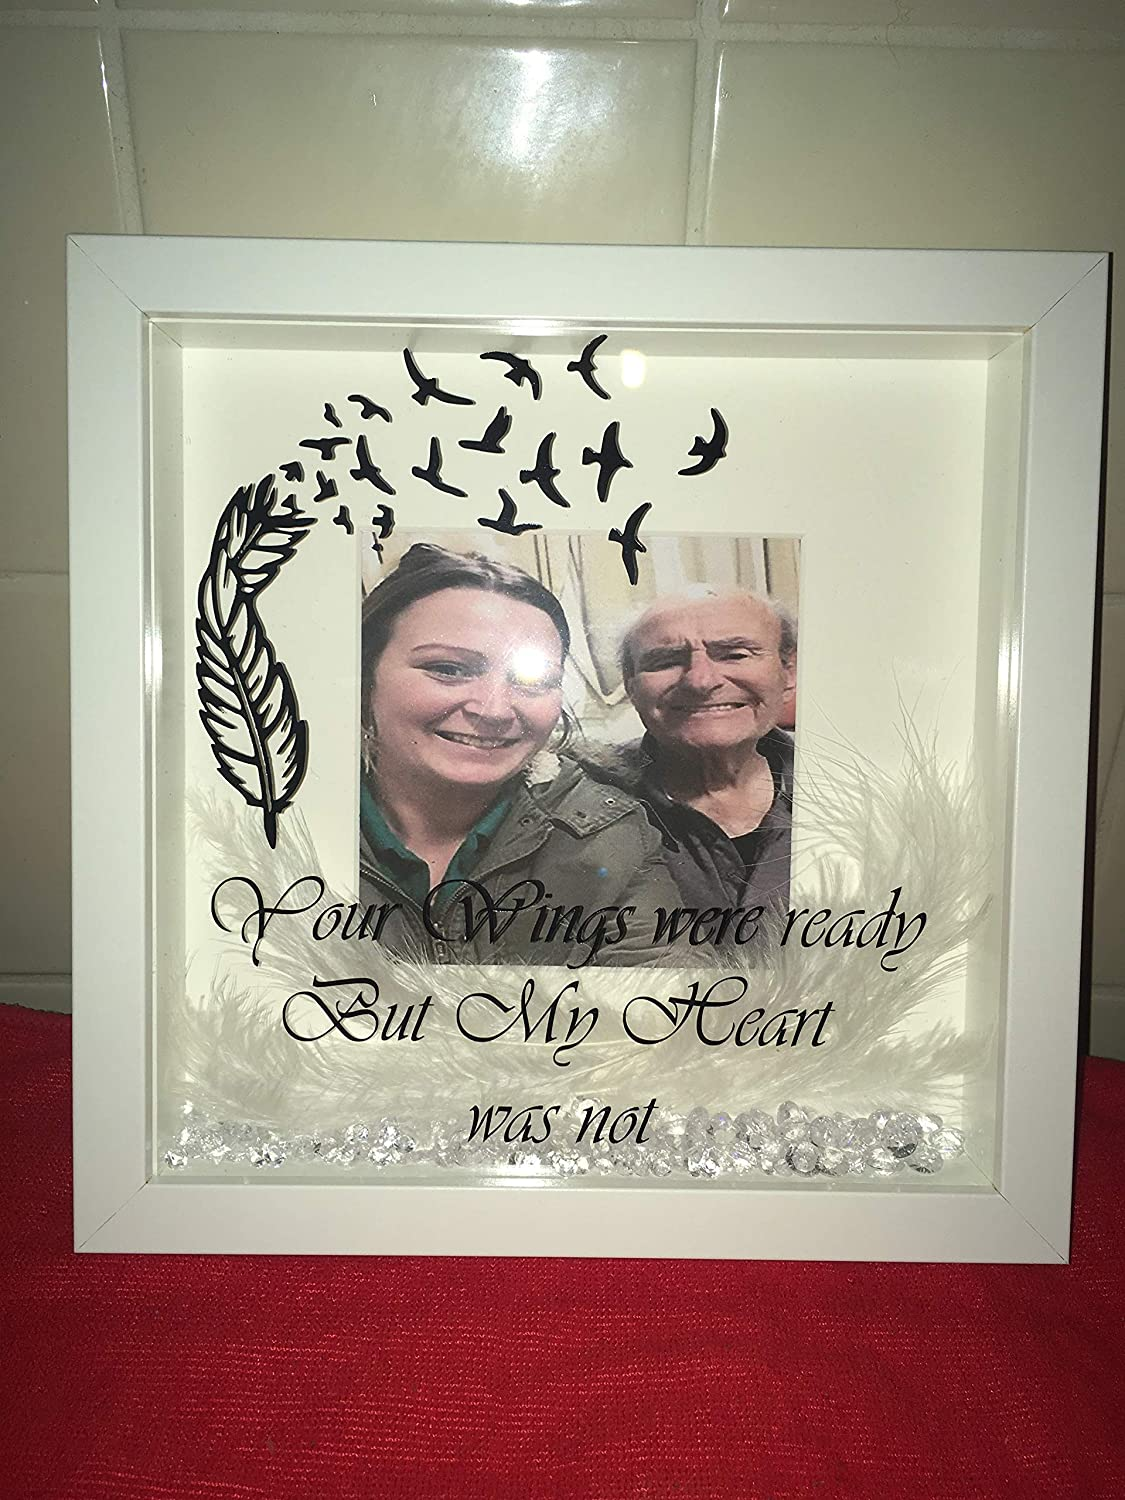 Your wings were ready but my heart was not Personalised Remembrance//Memorial Box Frame